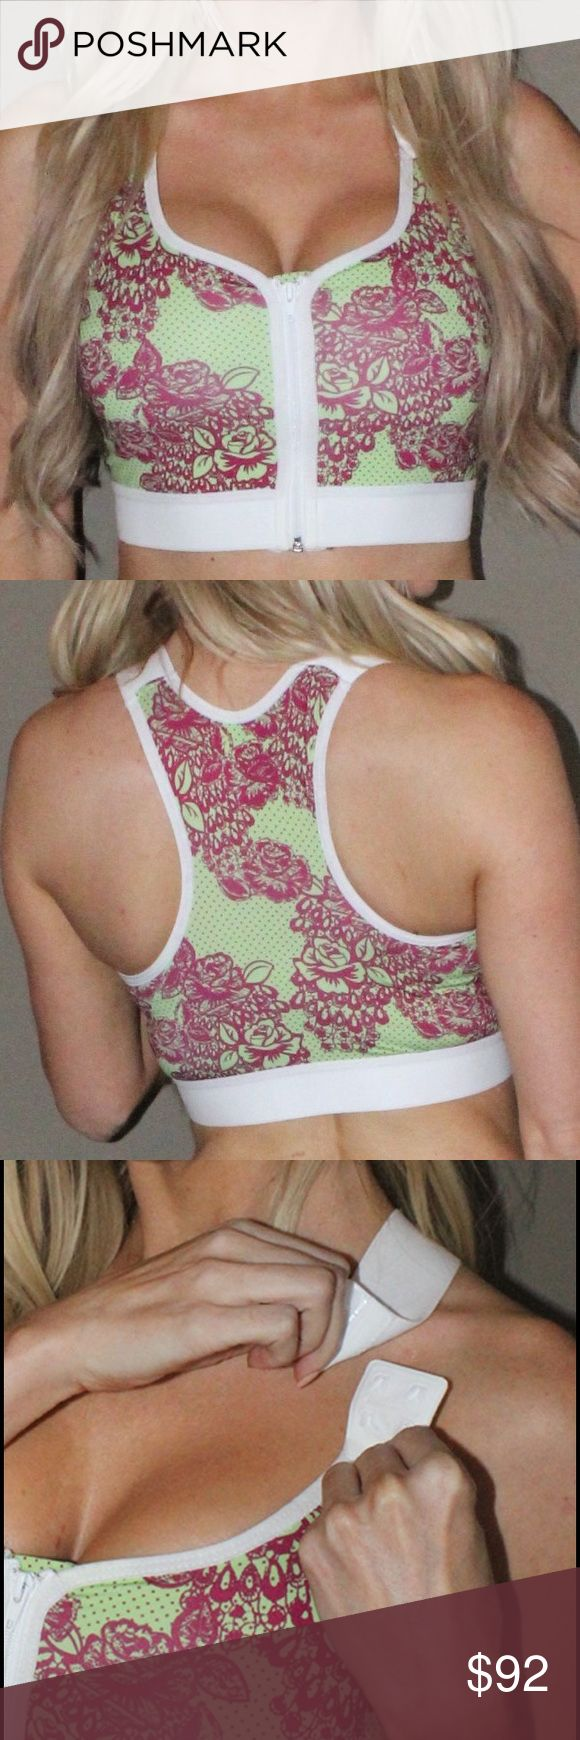 Sexy Lady Sports Bra Sexy Lady Snap Me Twice Bra - Green Floral Print.  The perfect sports bra to support you everyday. Recommended Wear 2-4 weeks after breast surgery & beyond. Also for Yoga, Pilates, & Lounging in style!  - Moderate Support - Low Profile Butterfly Double Snap Closures - Zipper Front Close (Heart Shaped Neckline) - Two levels of front strap adjust-ability - All over stretch fabric - Anti-bacterial & Moisture – Wicking Karlee Smith Intimates & Sleepwear Bras